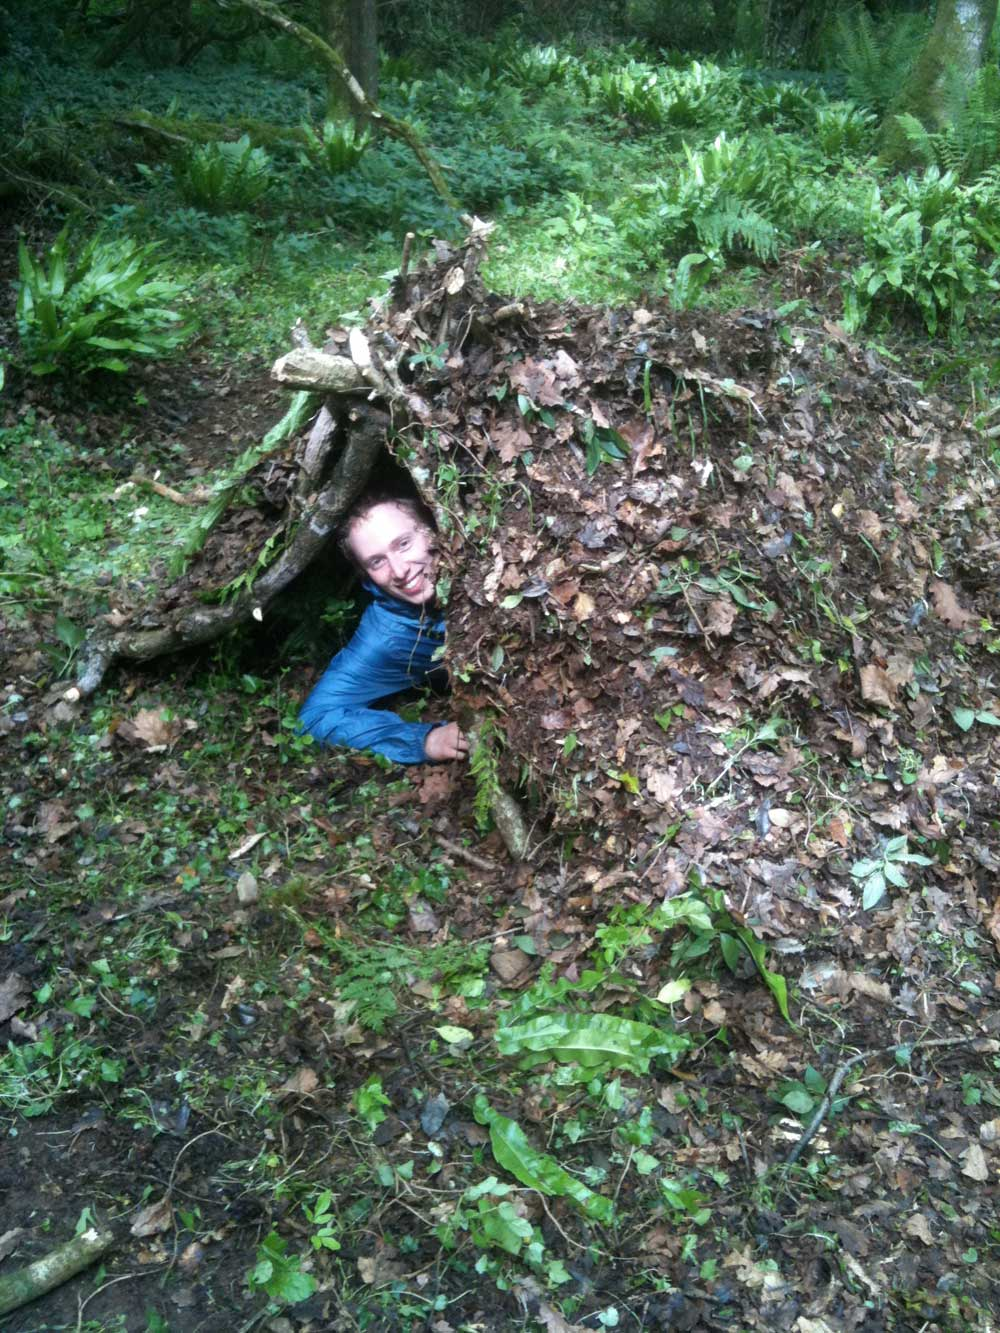 Leo Critchley in a debris shelter in the woods